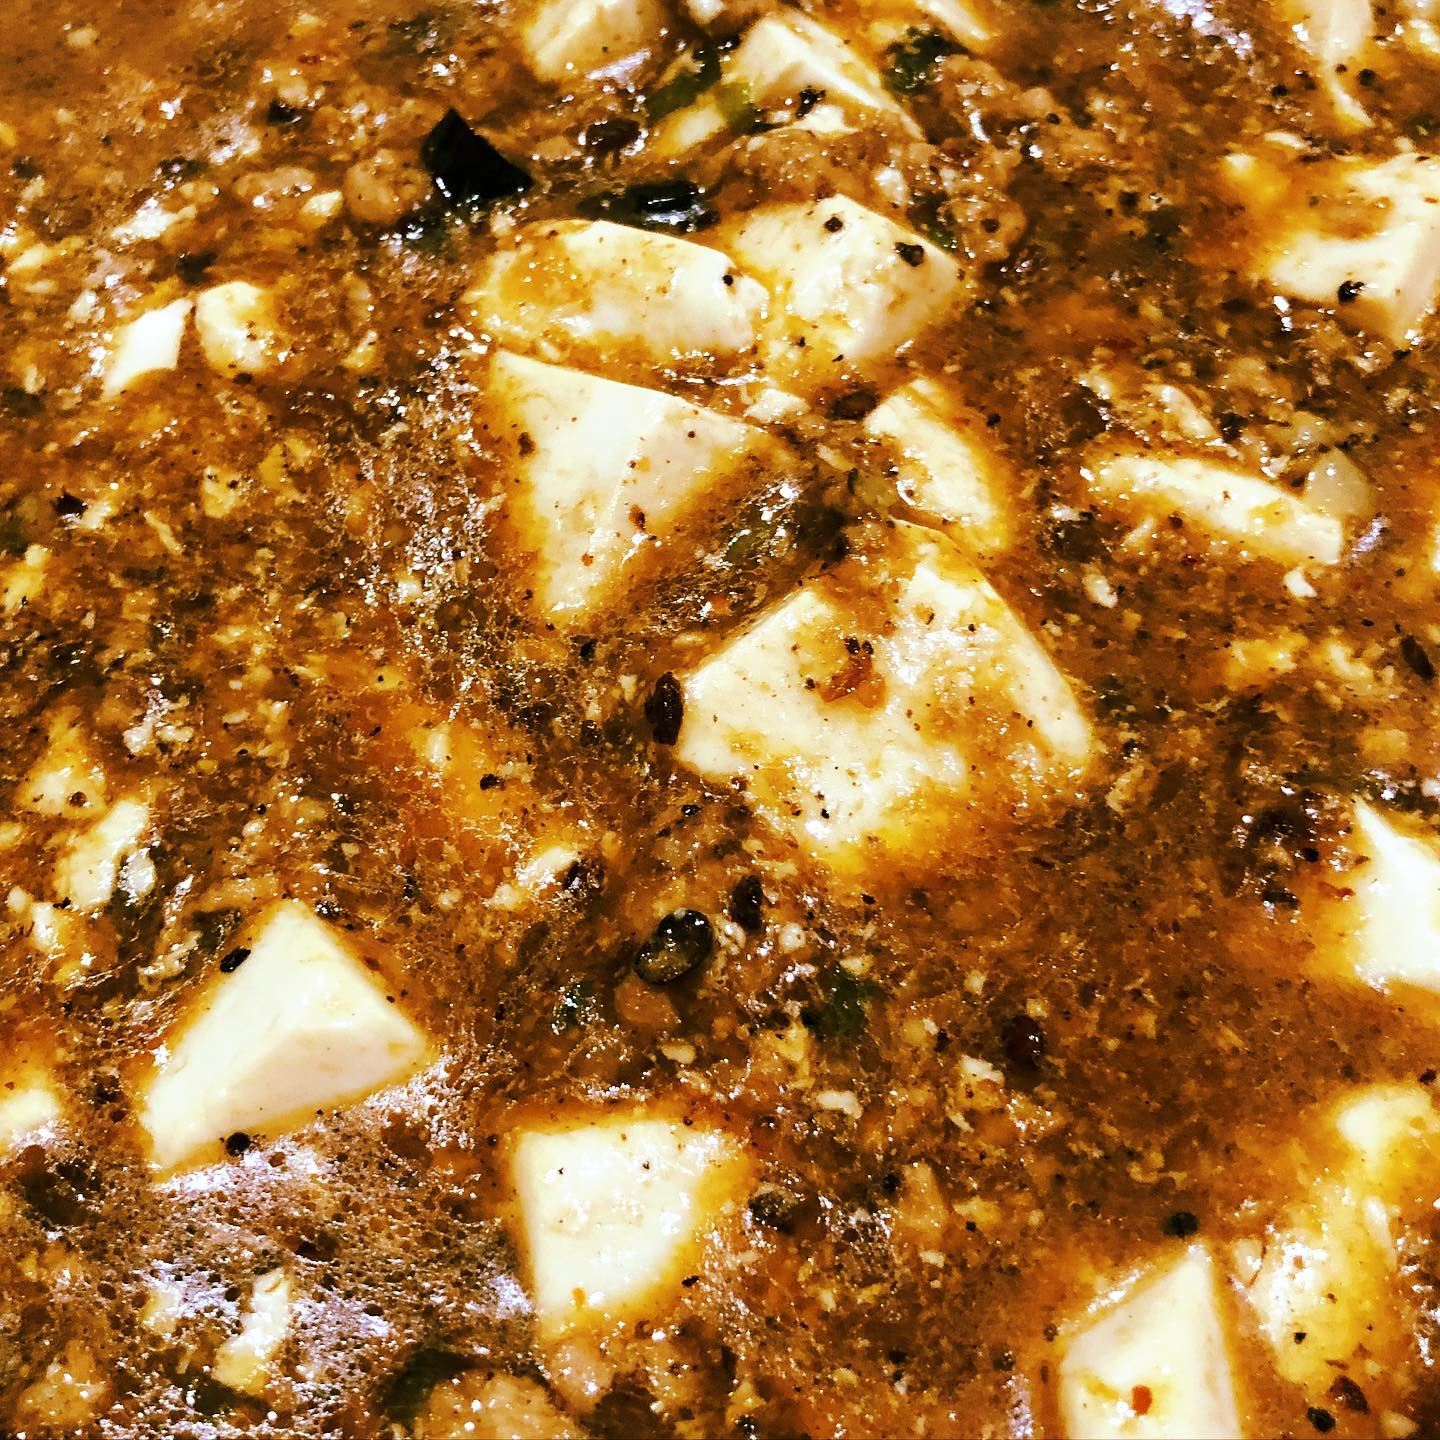 Can't believe it took me this long to finally try making mapo tofu